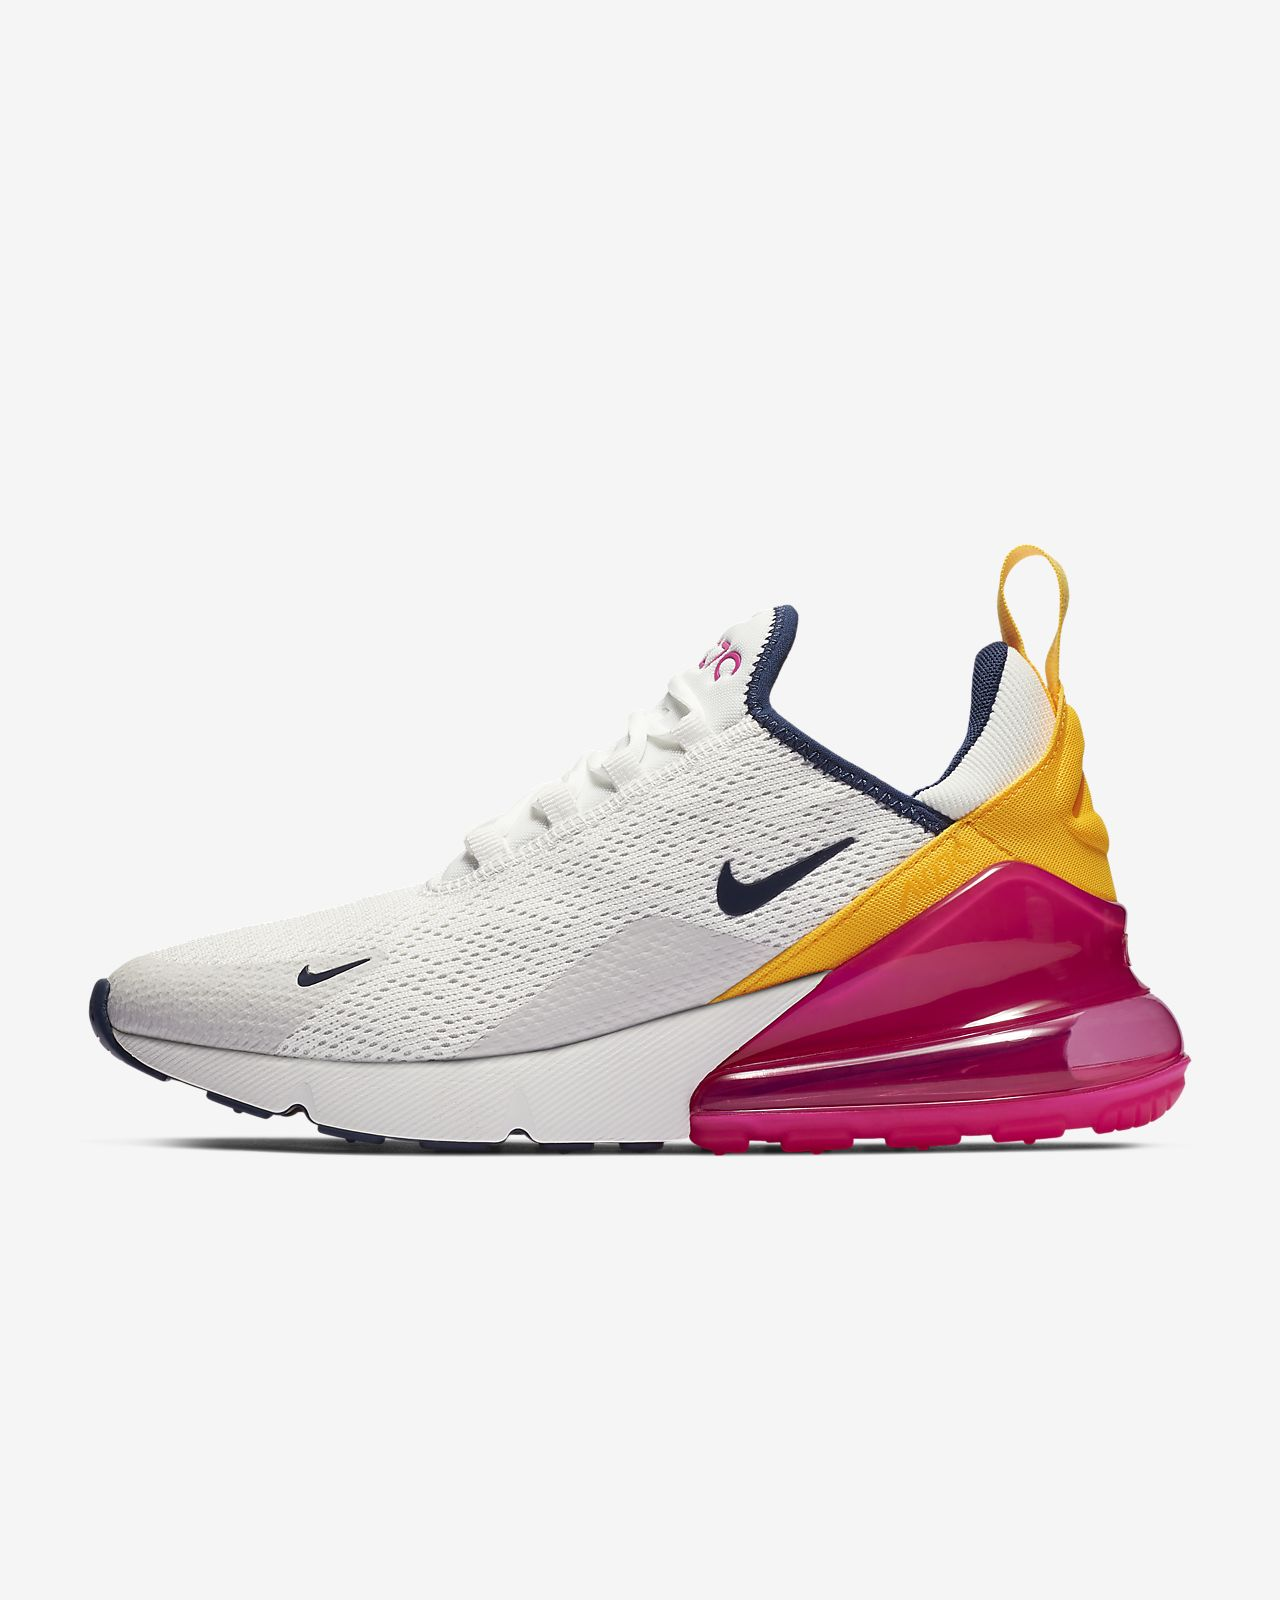 quality design 6d7f5 53e48 Women s Shoe. Nike Air Max 270 Premium